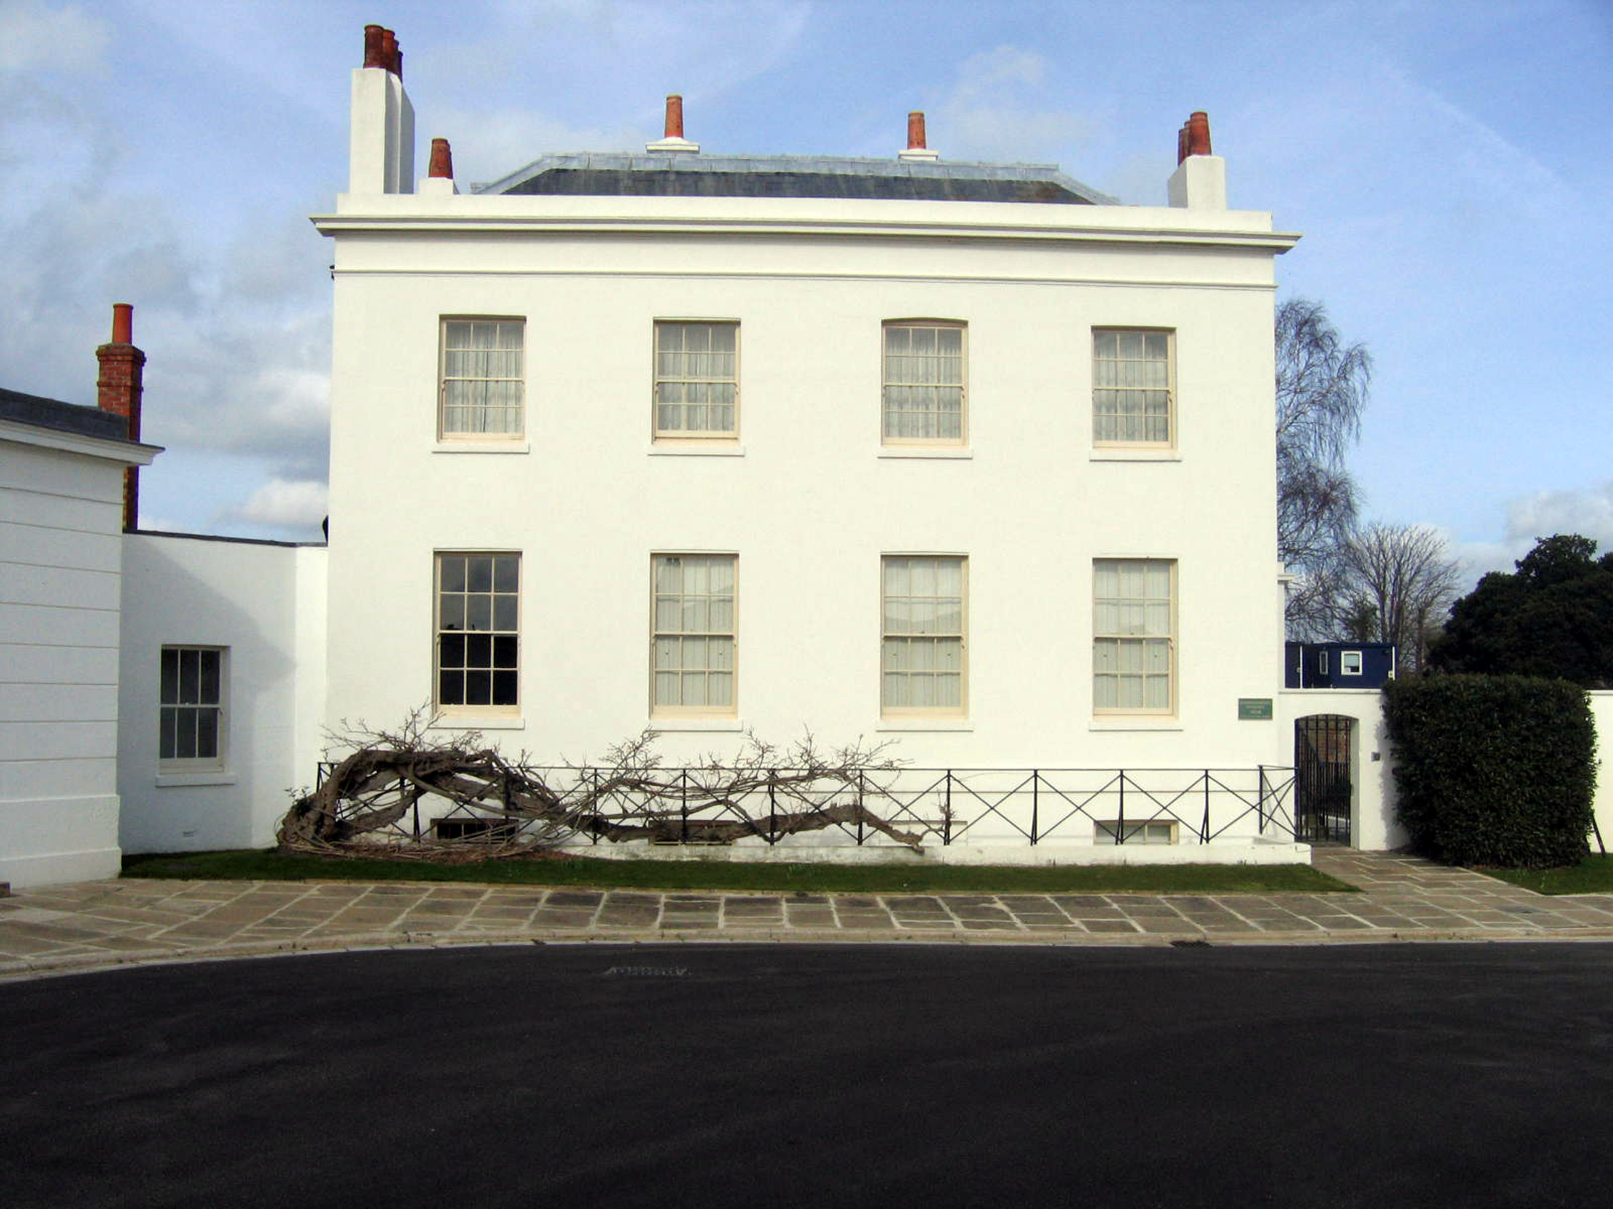 Superintendents House – Royal Clarence Yard (event from 2014)